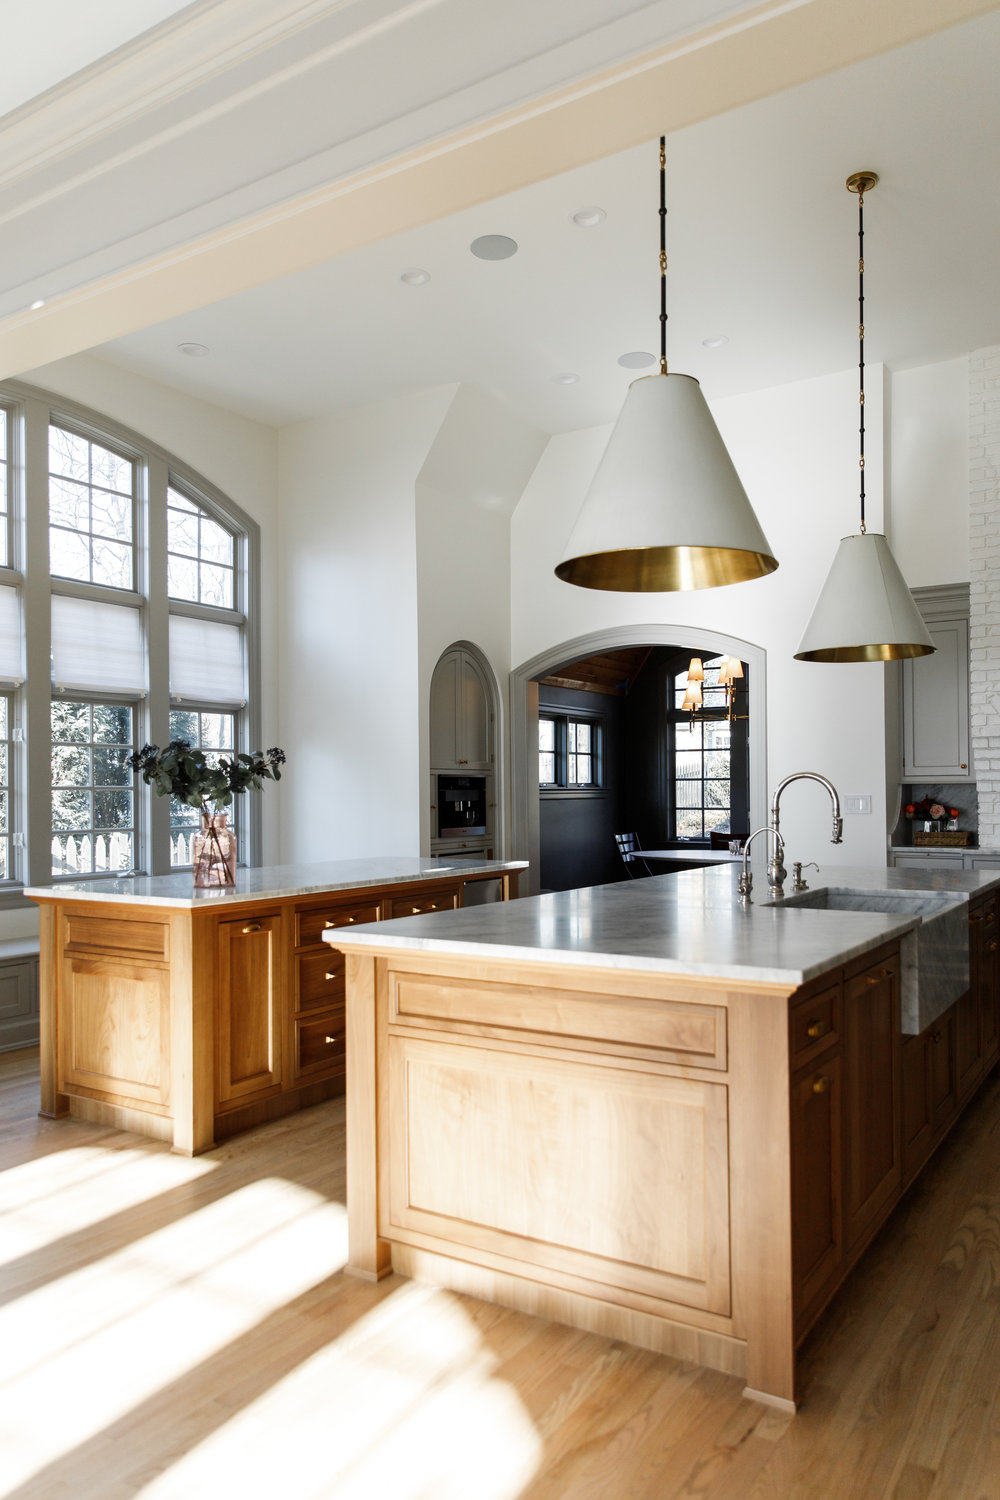 Bleached walnut double island, honed Carrara Marble countertops with apron front sink and stained red oak floors.